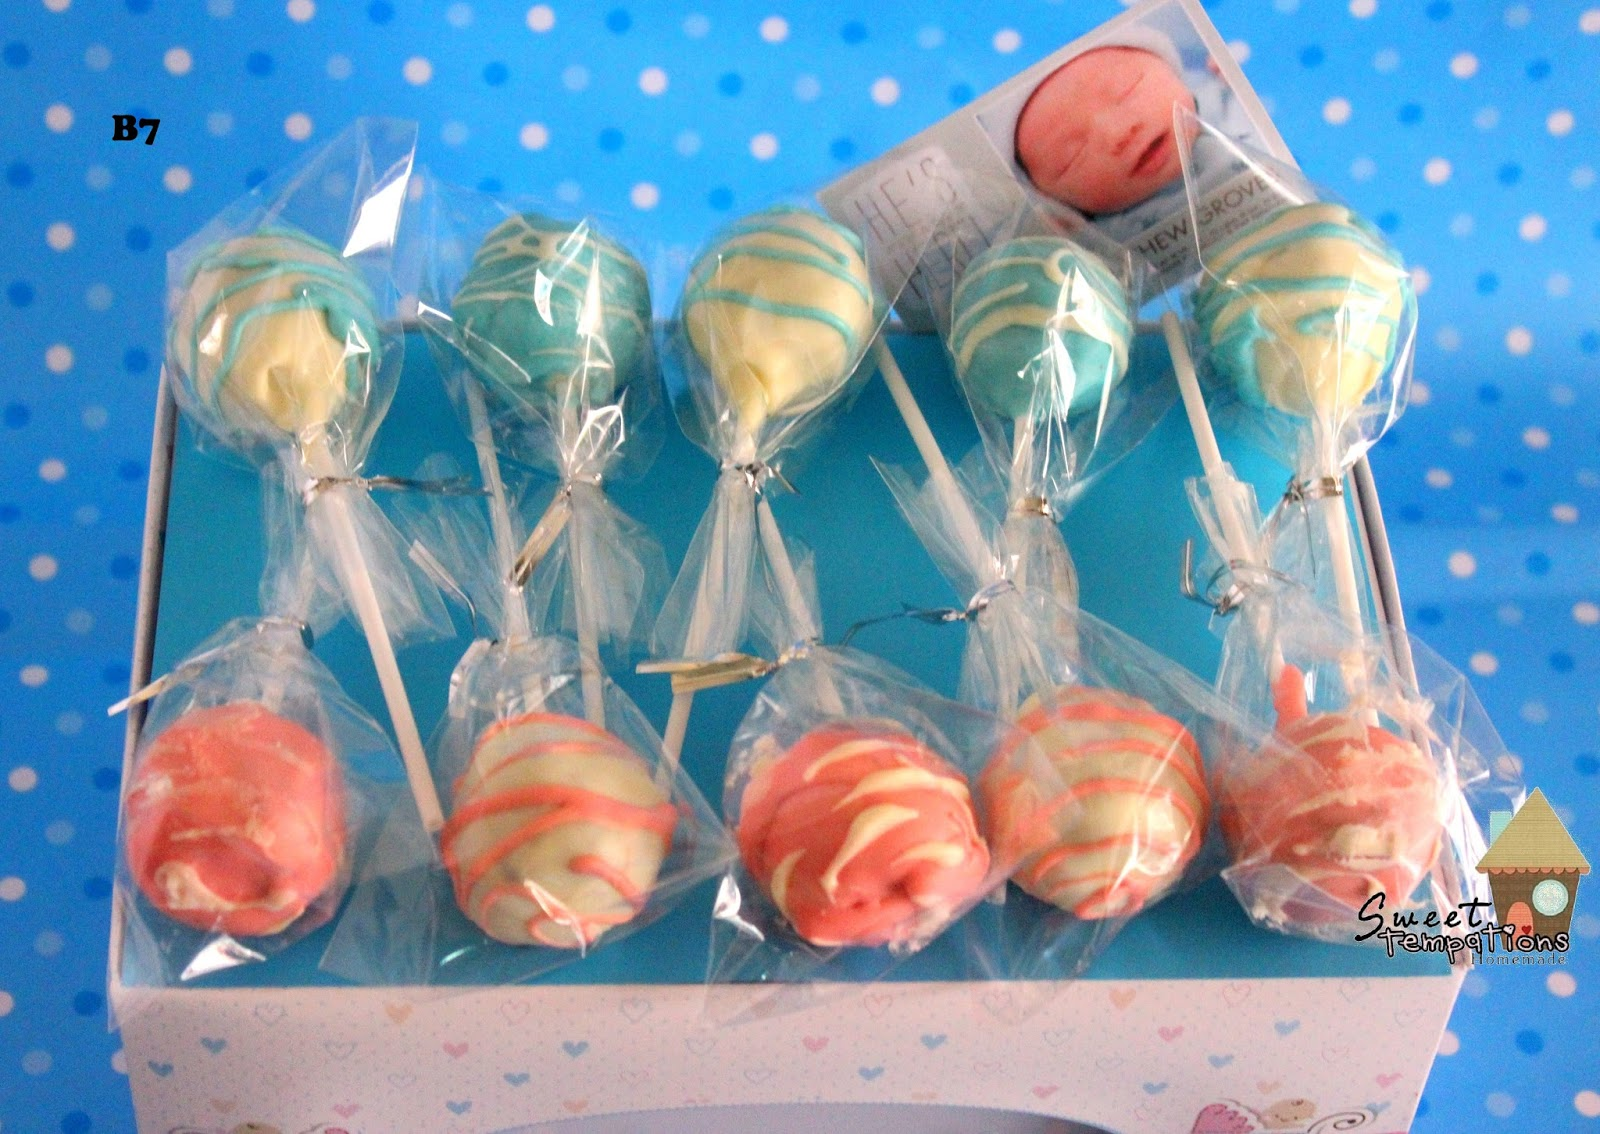 Sweet Temptations Homemade Cakes Amp Pastry New Baby Boy